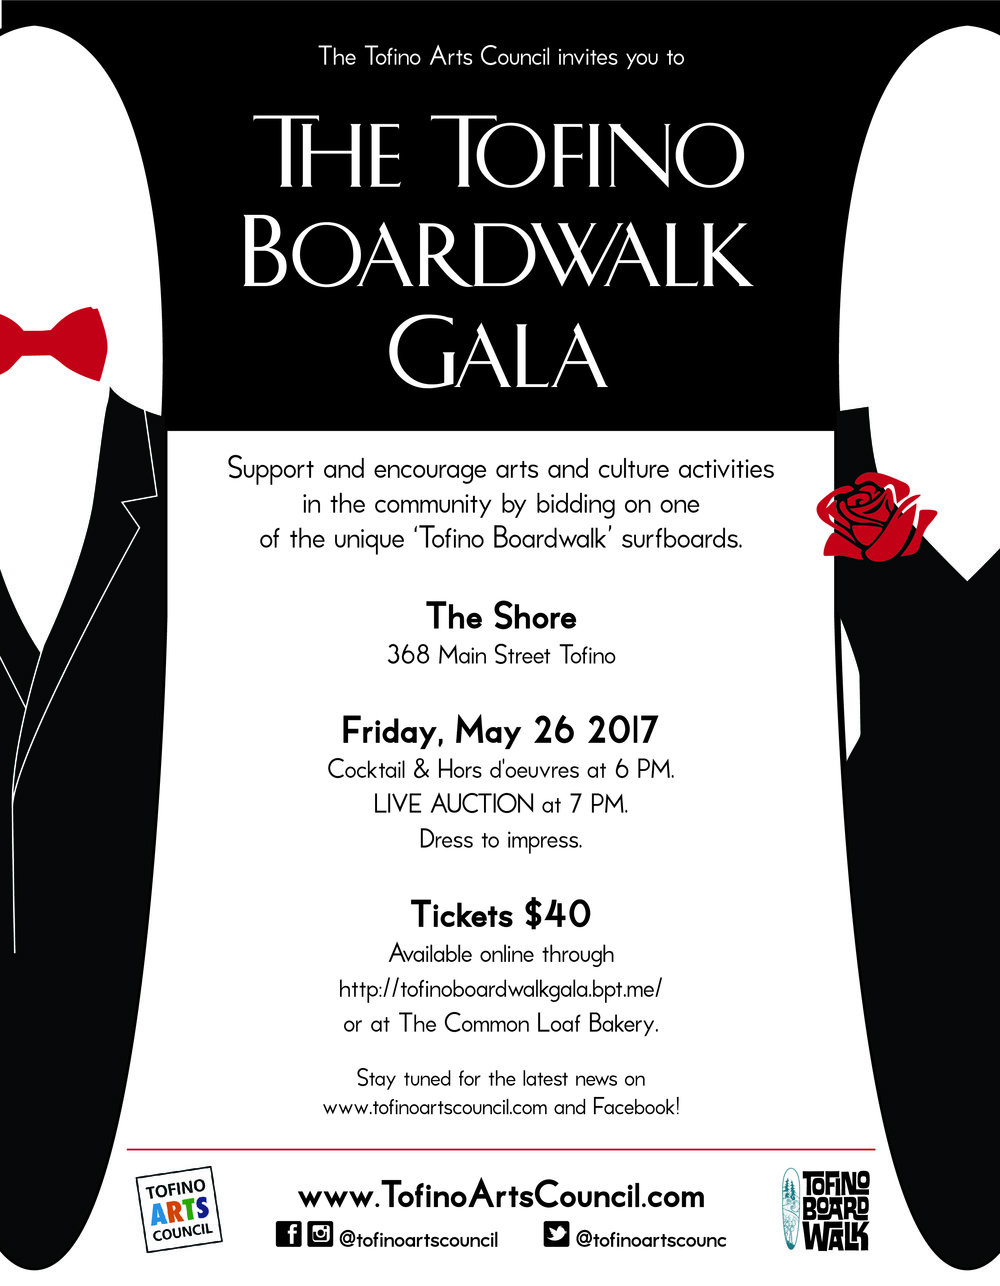 Tofino Boardwalk Gala